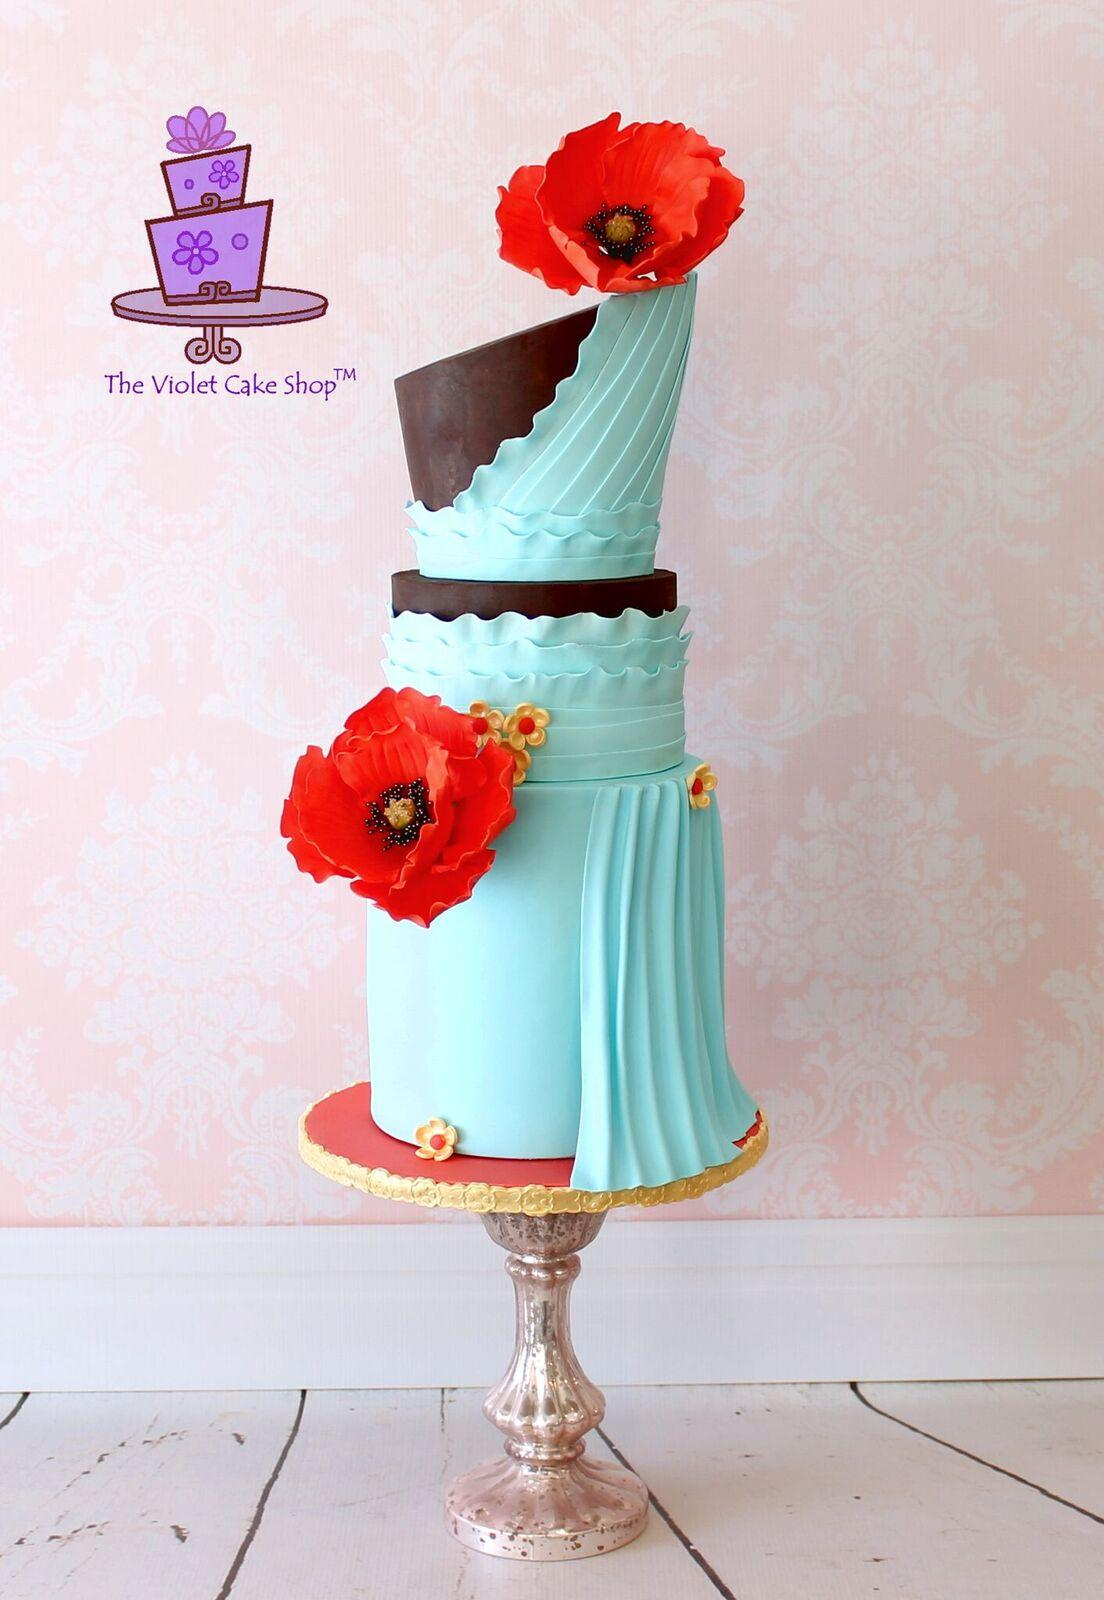 Sugar Poppies and draped dress cake